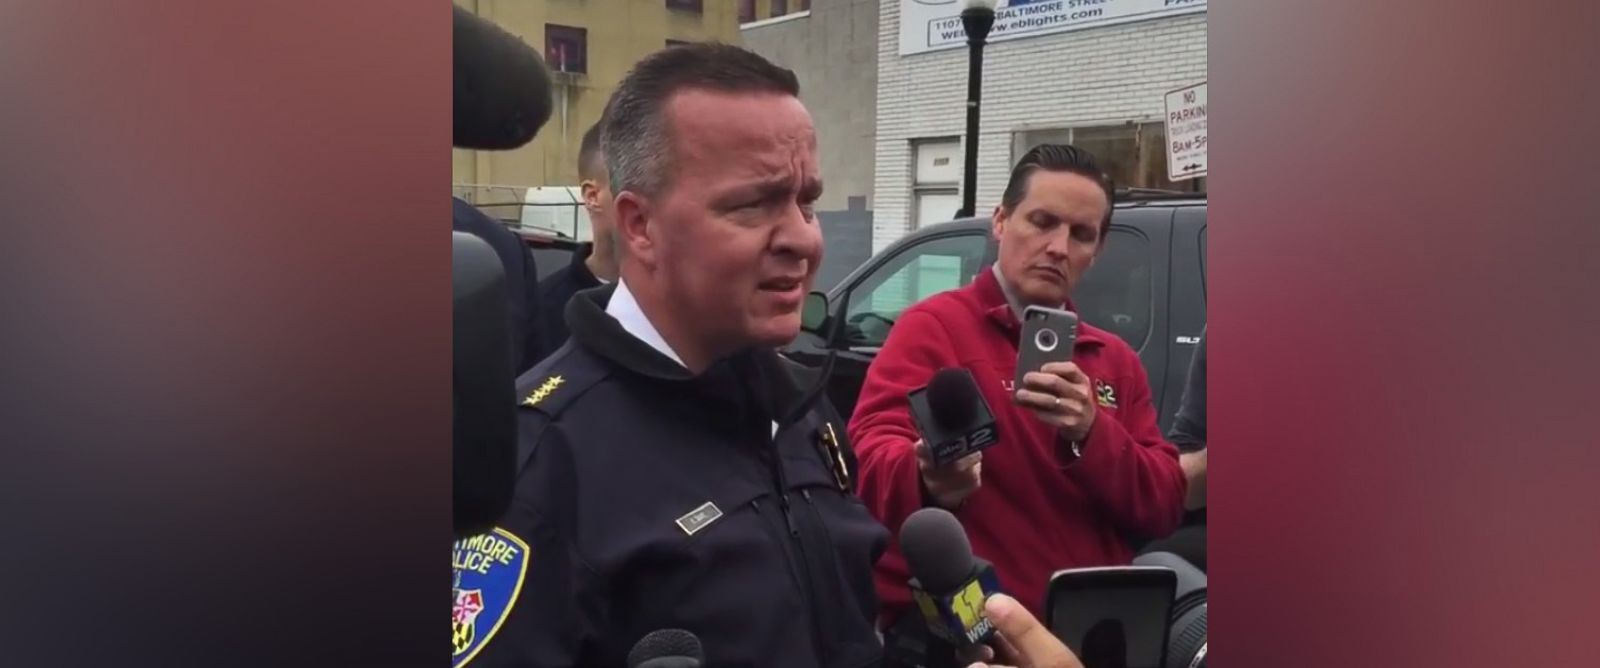 Baltimore Police Shoot 13-Year-Old Holding 'What Looked Like a Firearm'